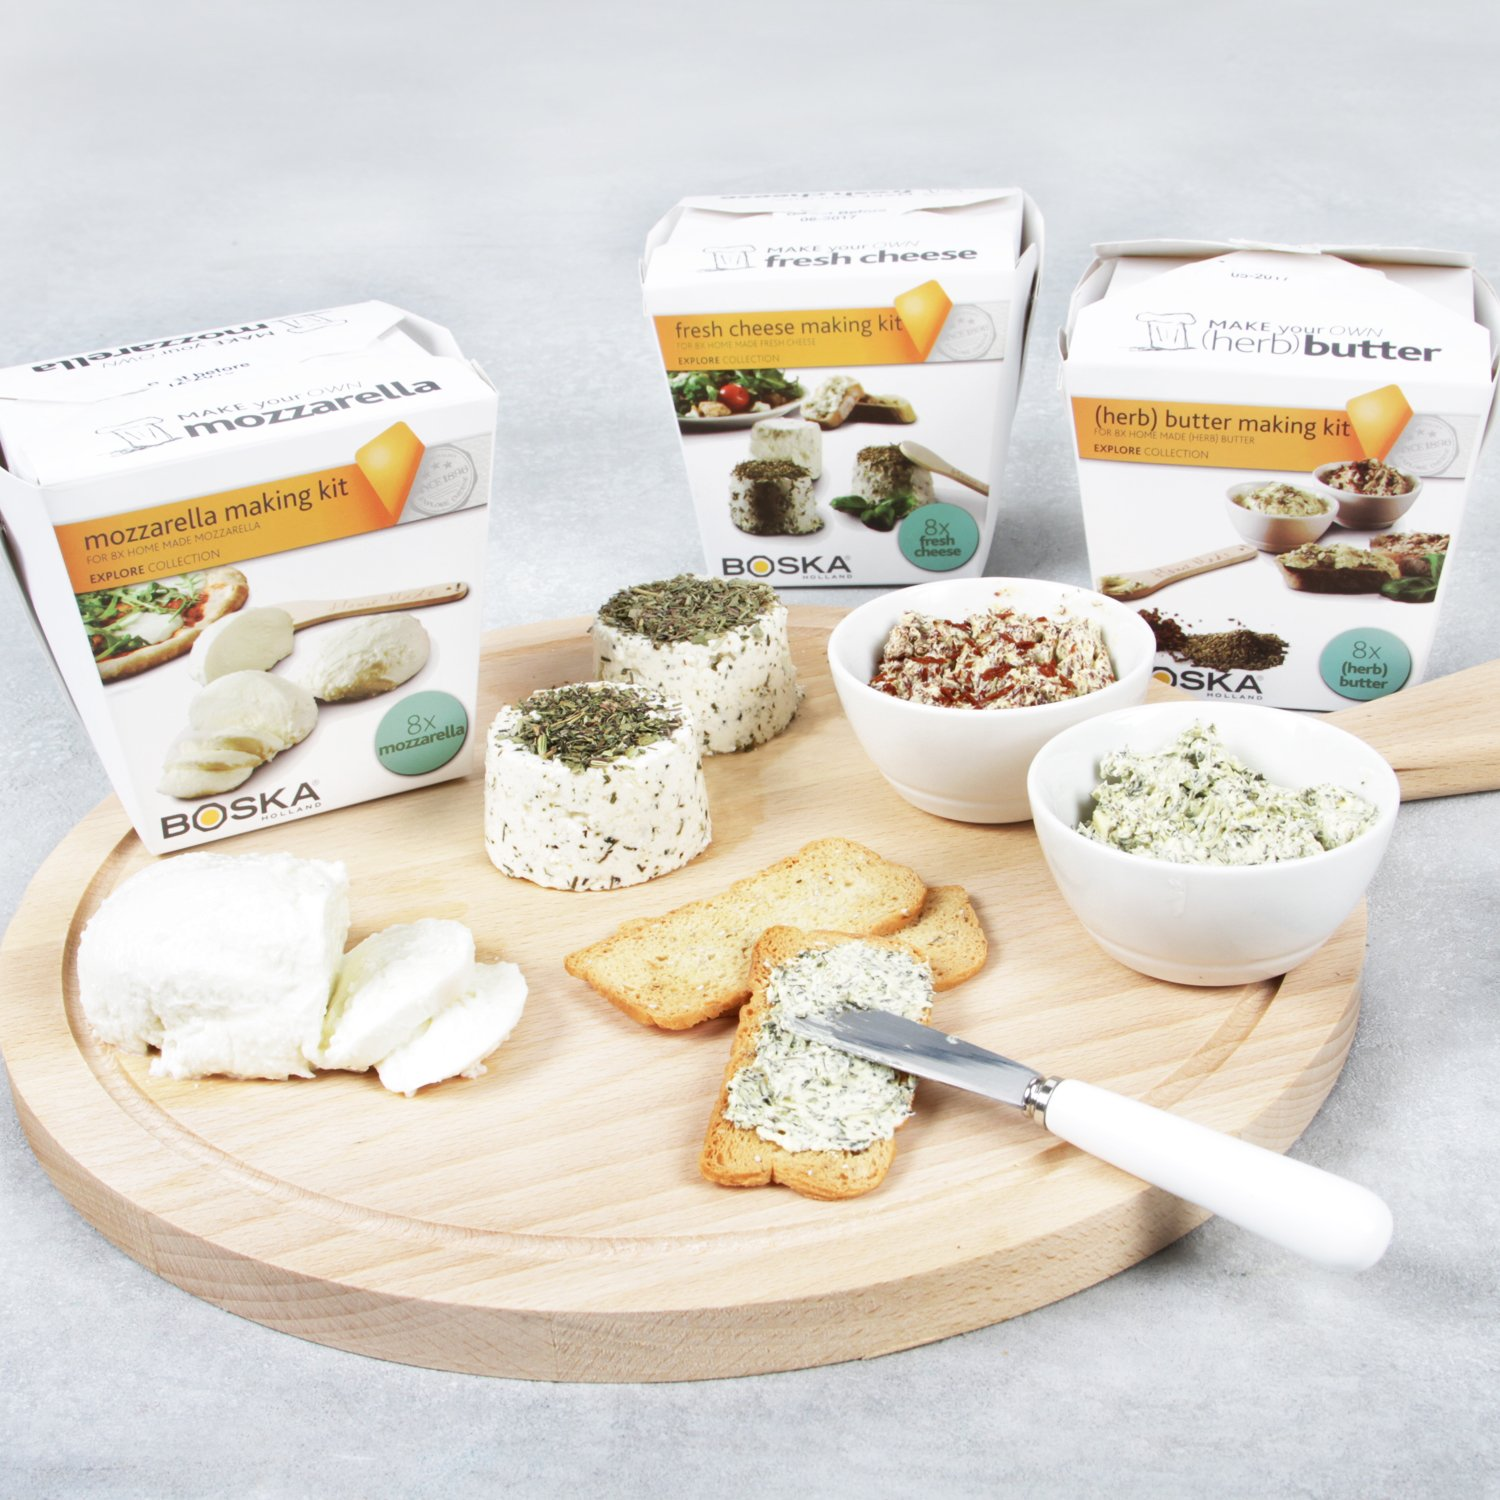 Boska Holland Mozzarella Cheese Making Kit, Homemade Set, Makes up to 8 Batches, Explore Collection by Boska Holland (Image #5)